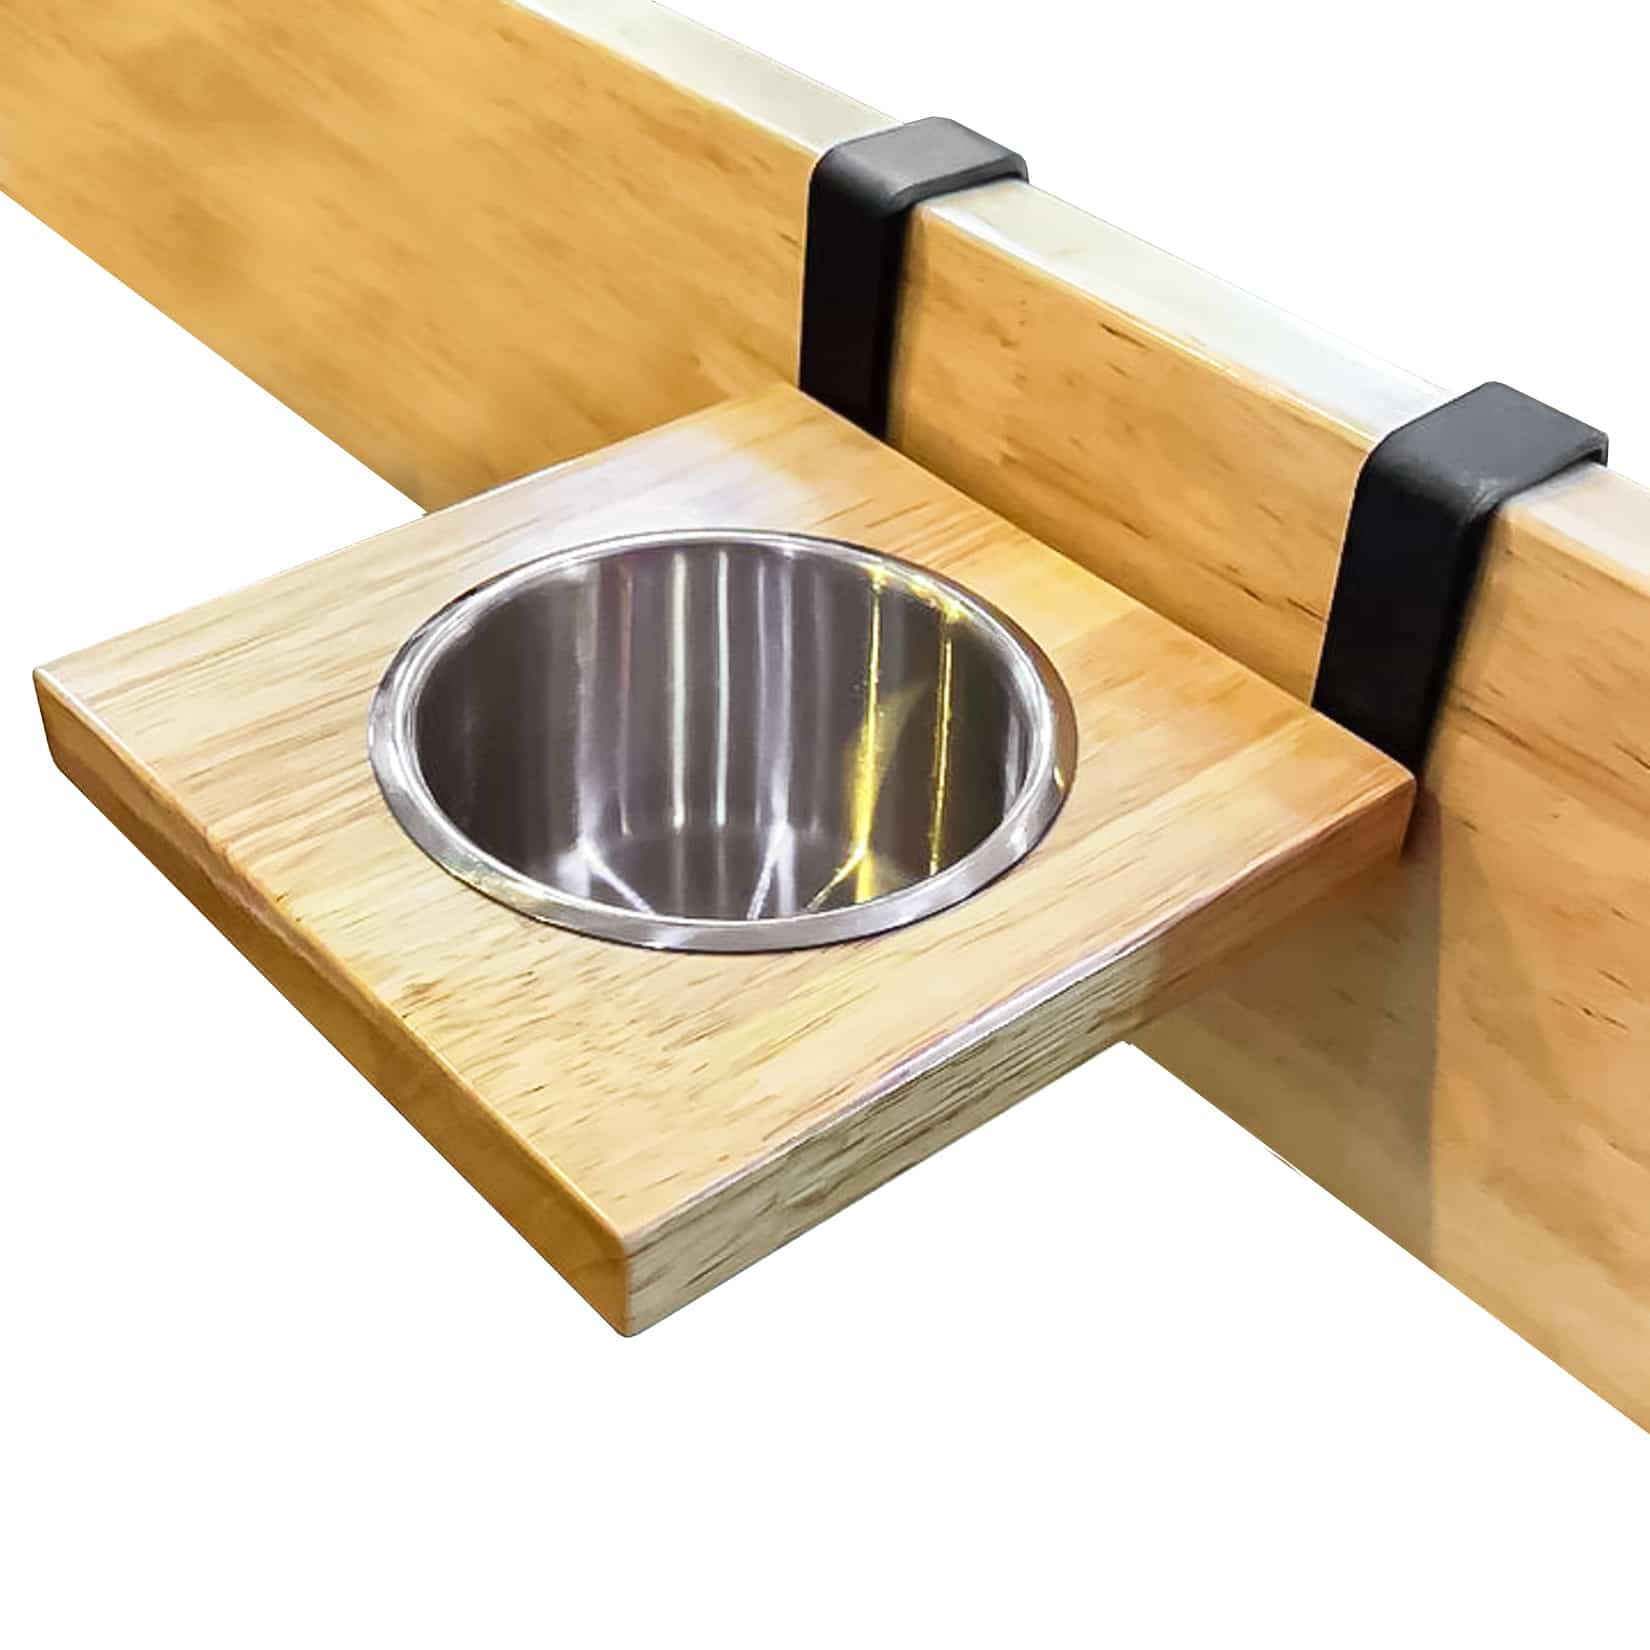 Board Gaming Furniture - Cup Holder